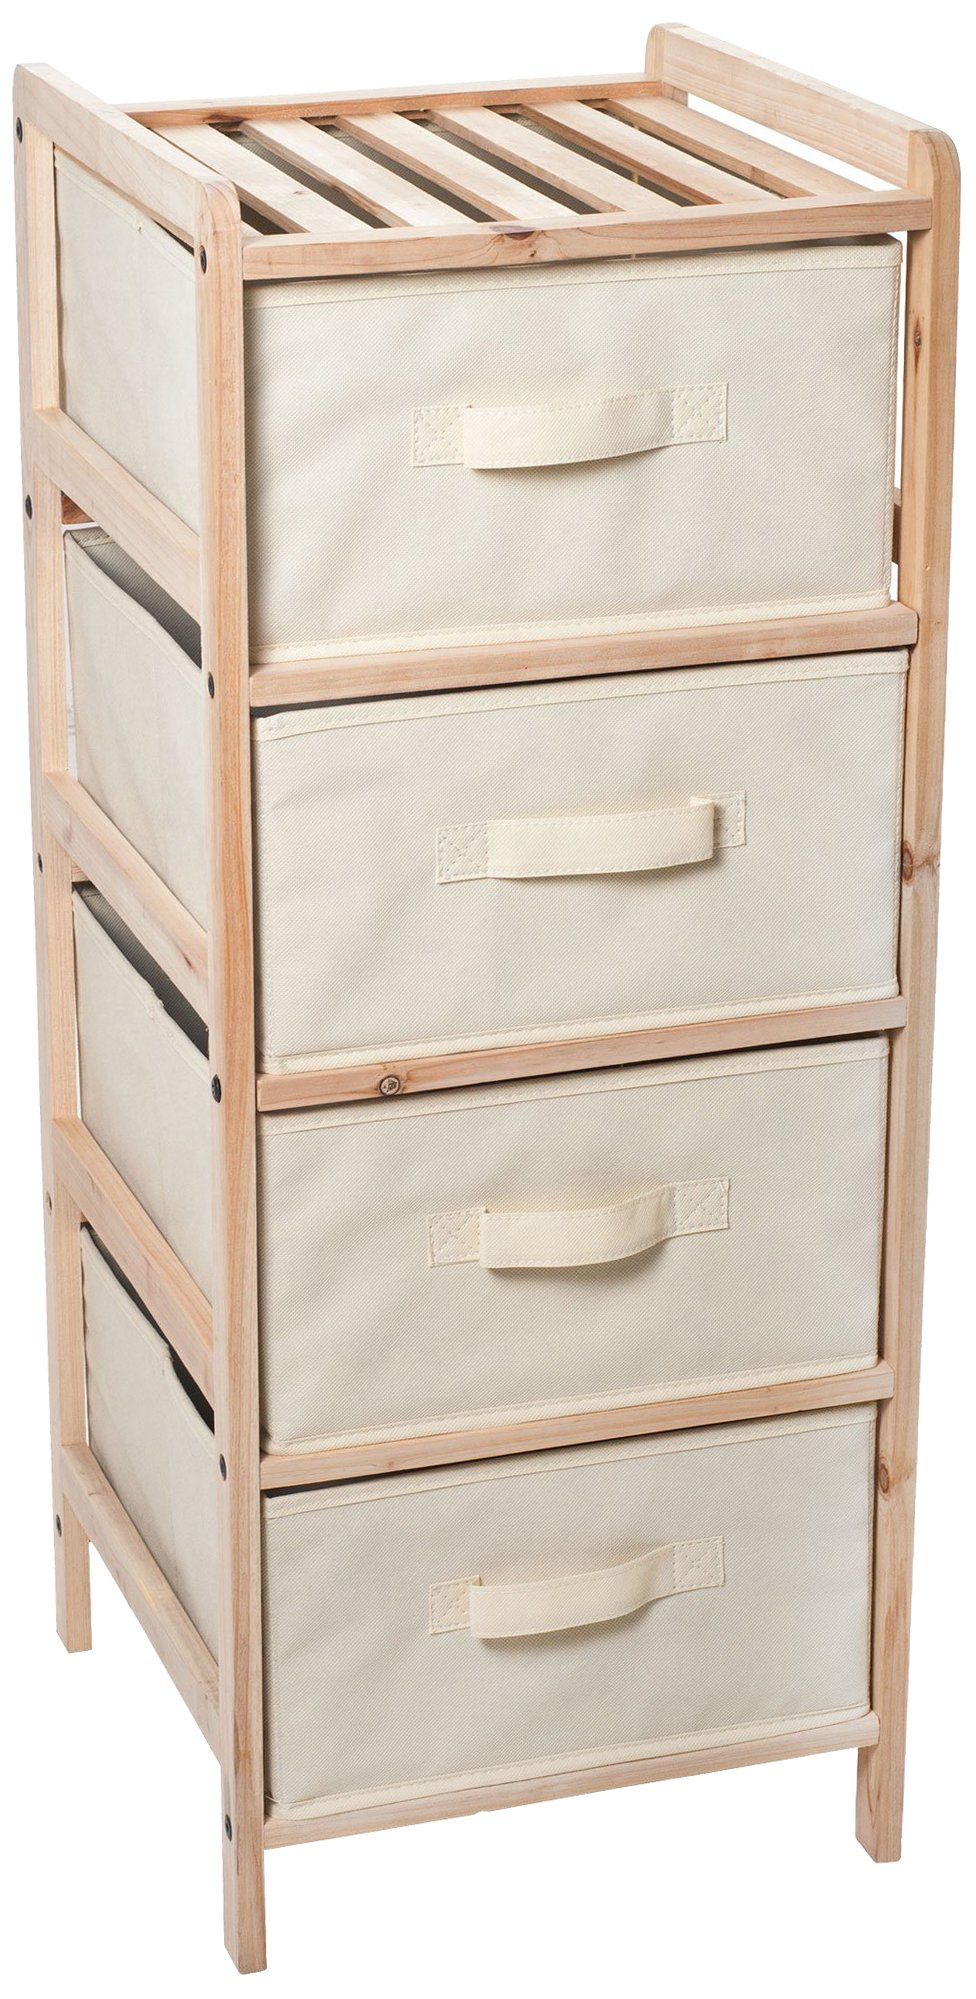 Lavish Home Organization Drawers with Natural Wood Shelf and Four Fabric Storage Bins- Lightweight and Perfect for Dorms, Bathrooms or Bedrooms by